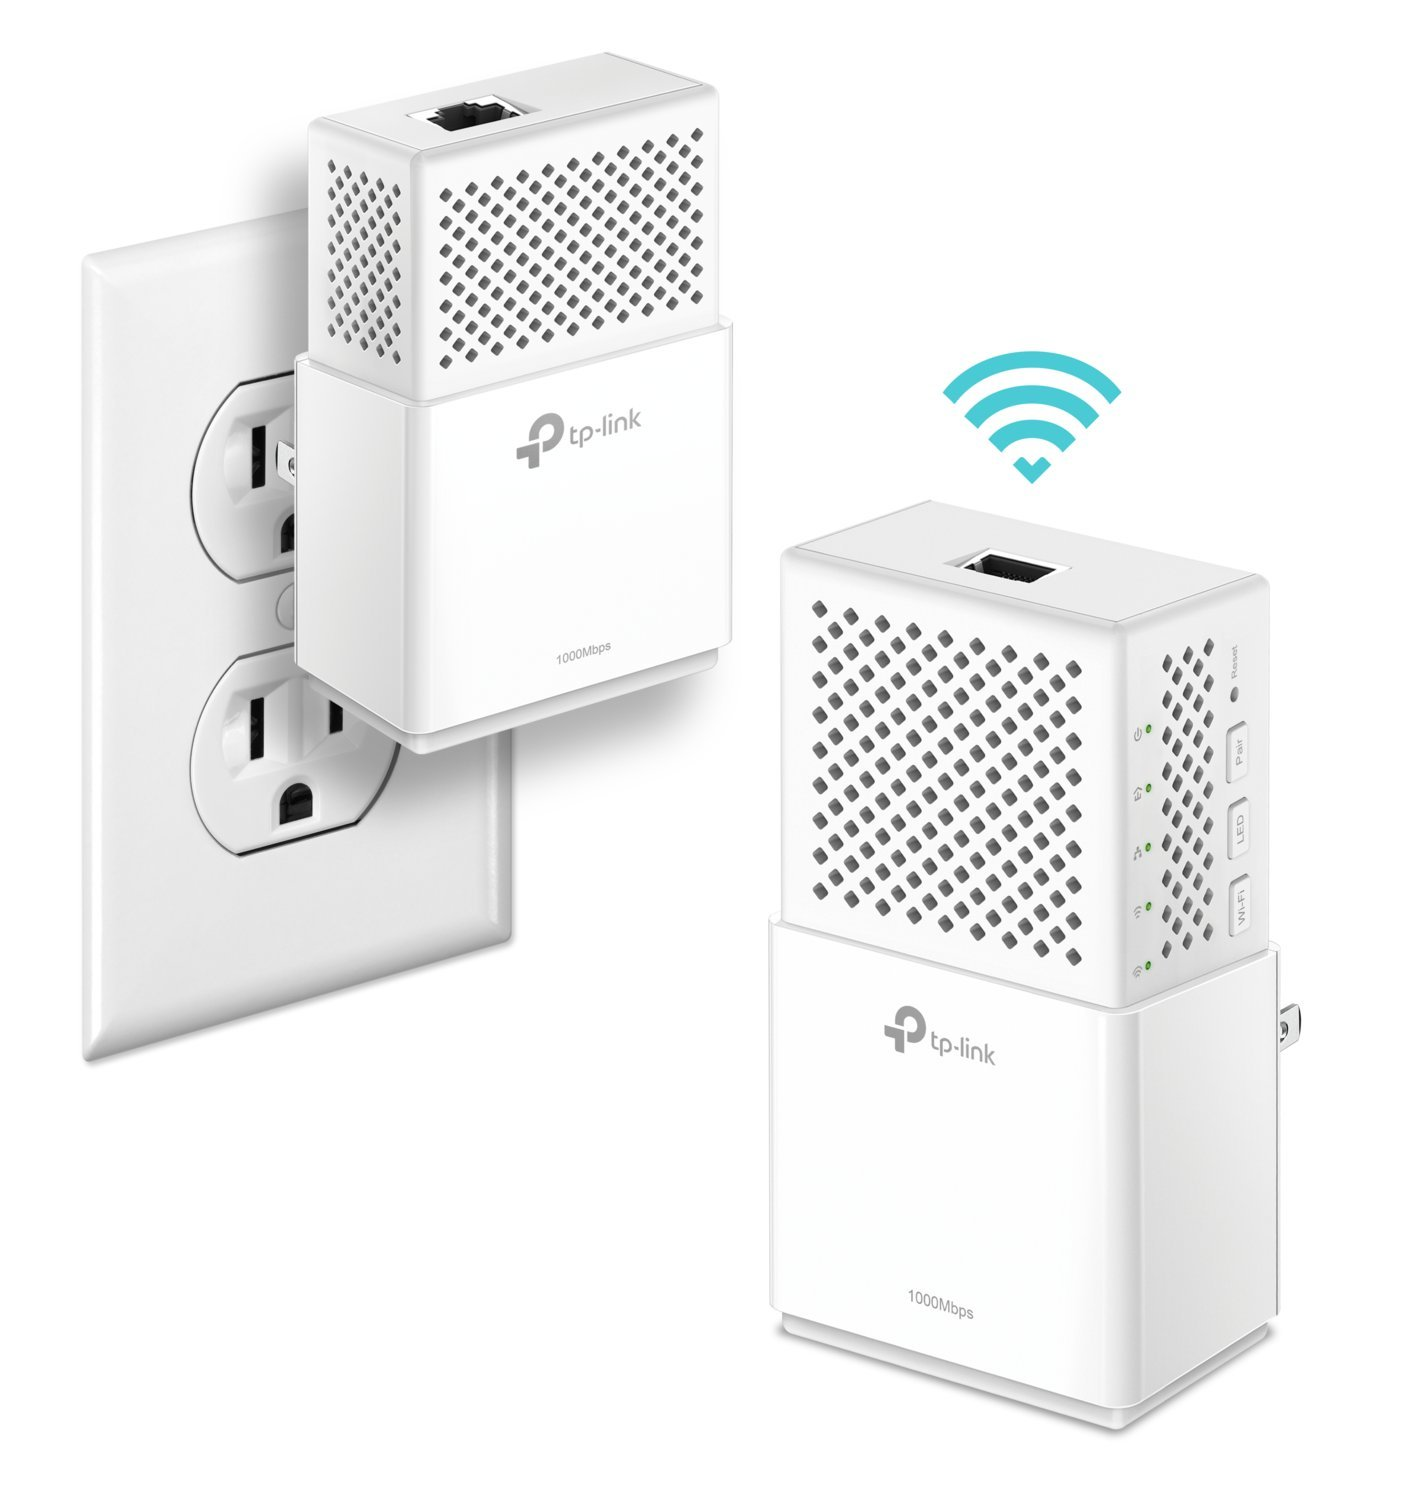 AV1000 Gigabit Powerline Dualband AC Wi-Fi Extender Kit, 1 Gigabit Port, Powerline Speeds Up to 1000Mbps (TL-WPA7510 KIT)